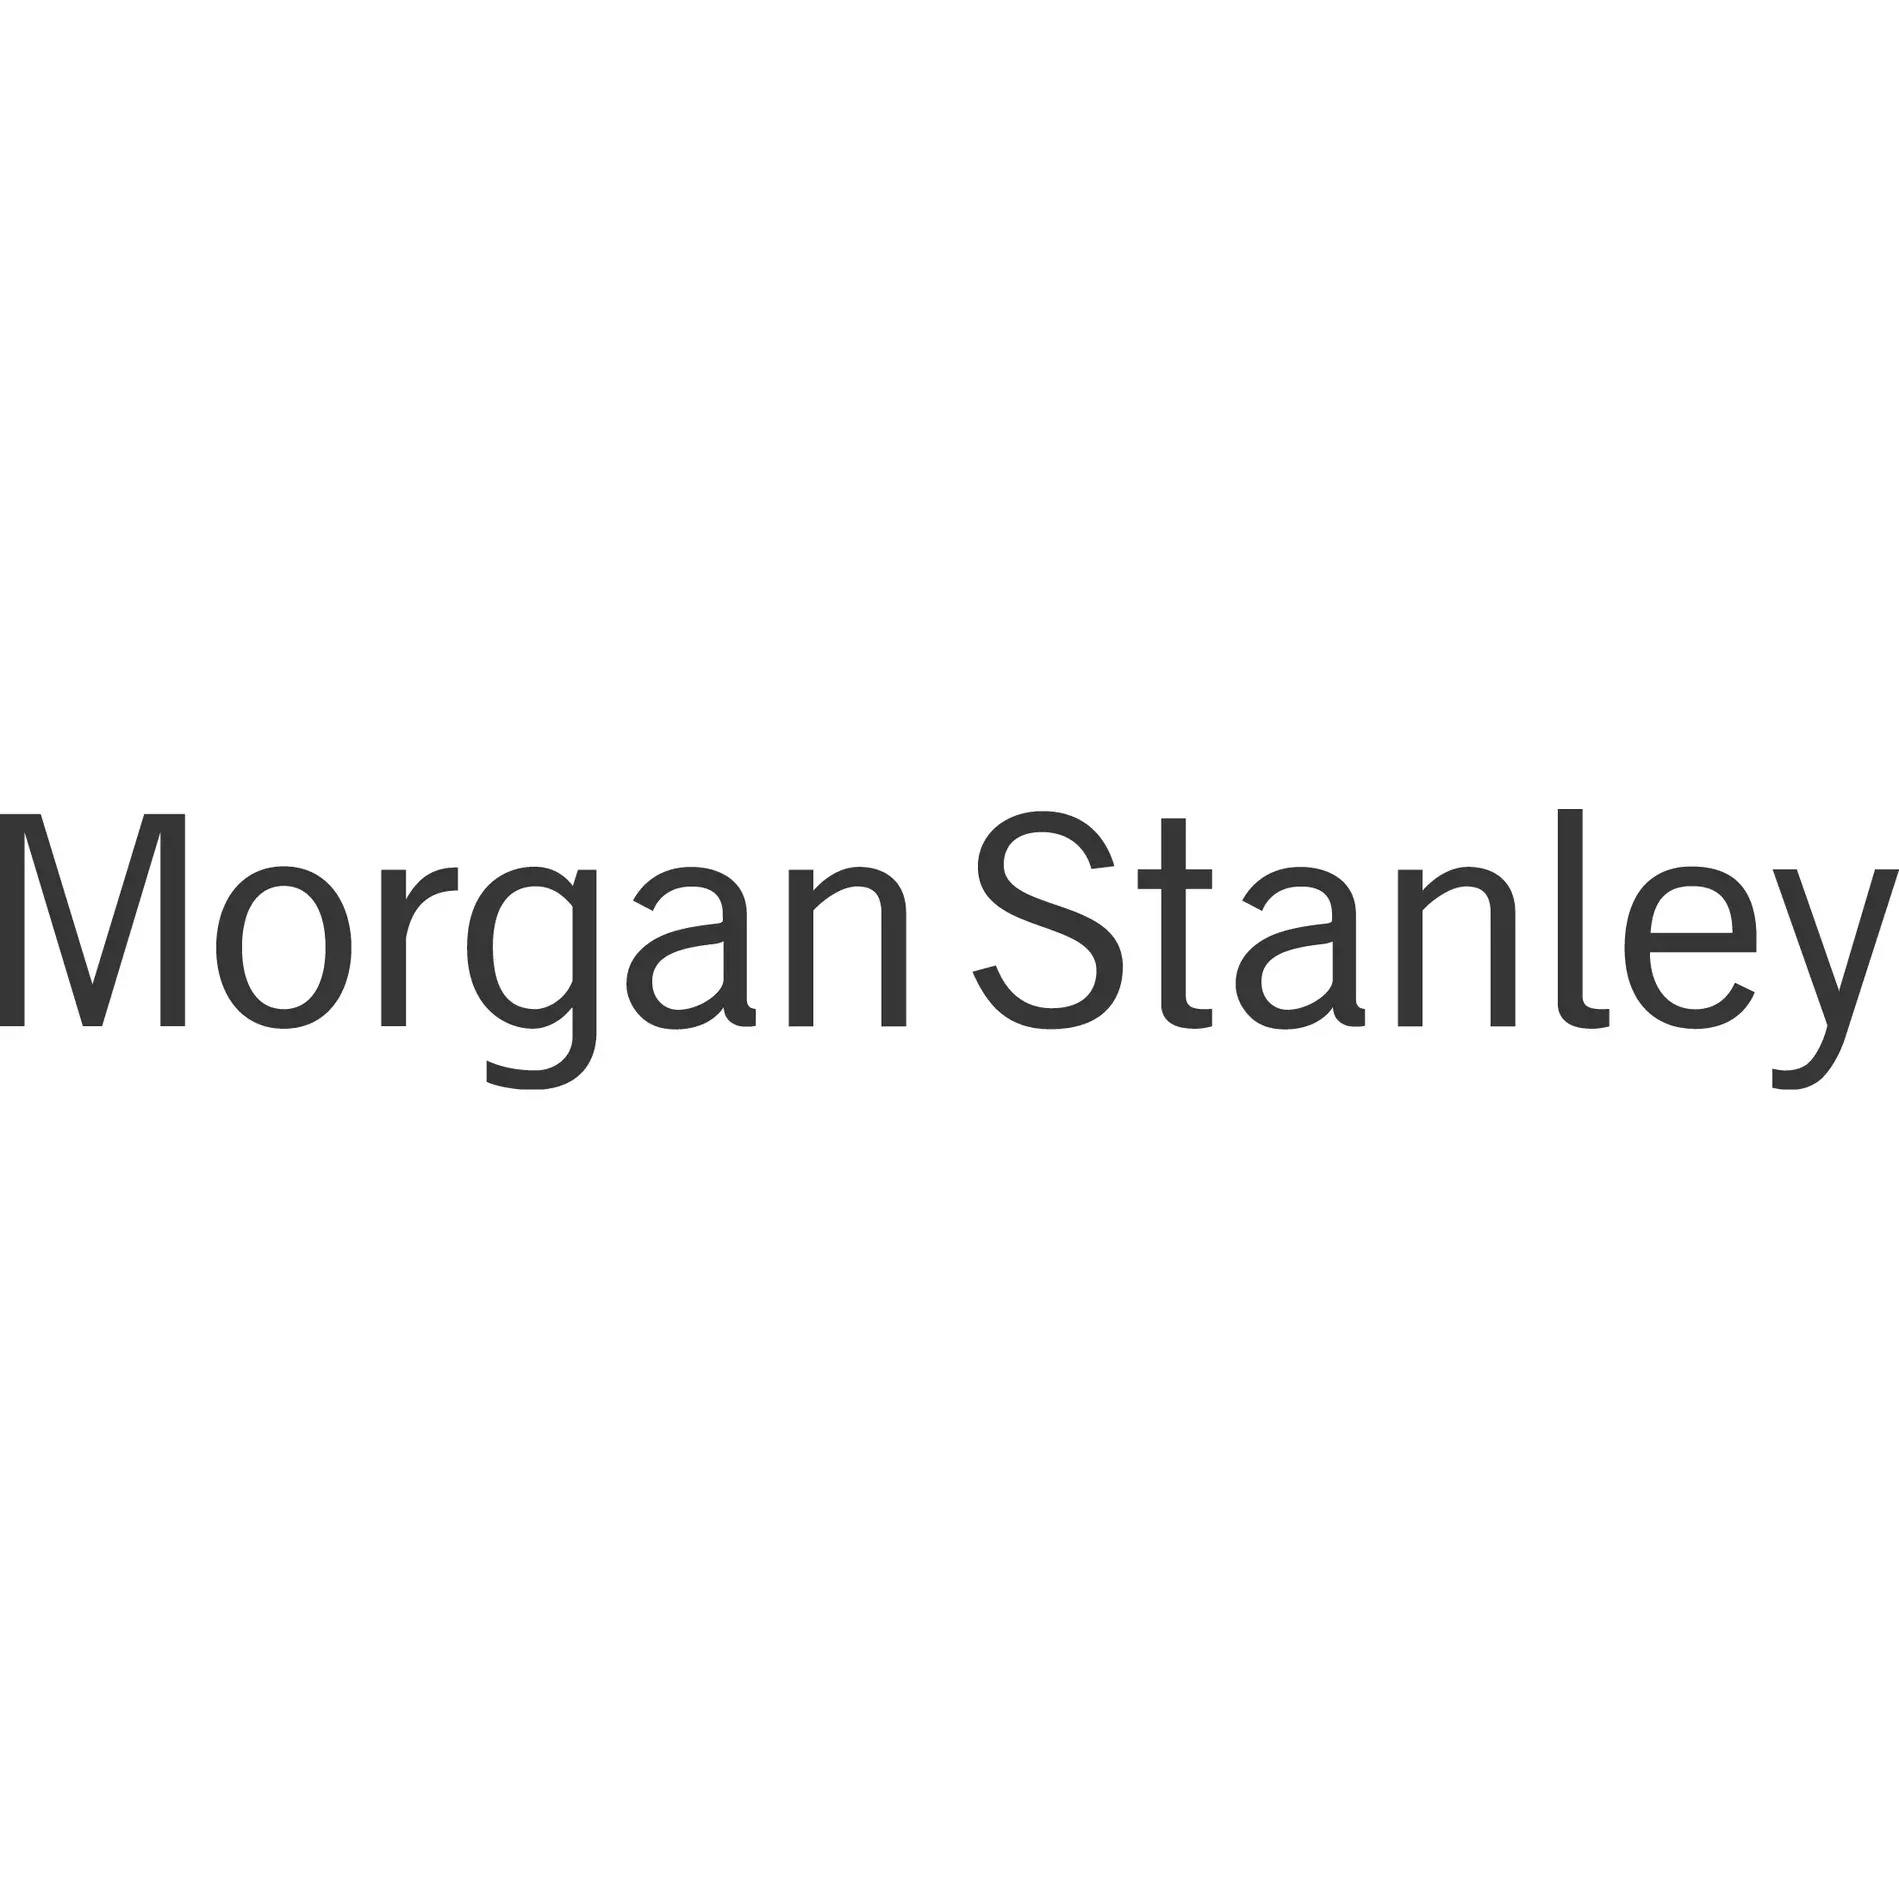 The Hansgen Mary Group - Morgan Stanley